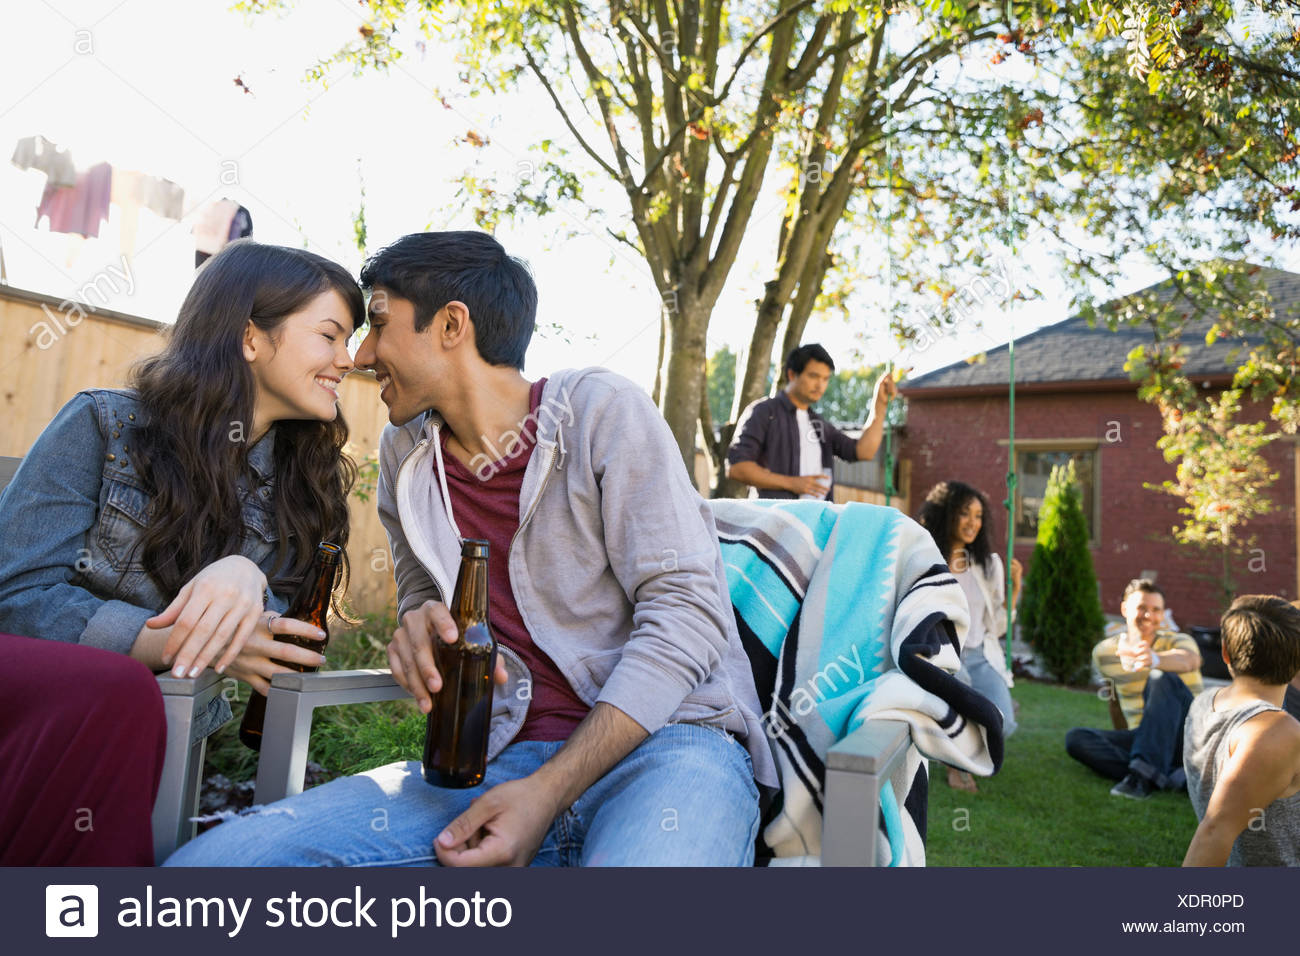 Couple rubbing noses at backyard barbecue - Stock Image